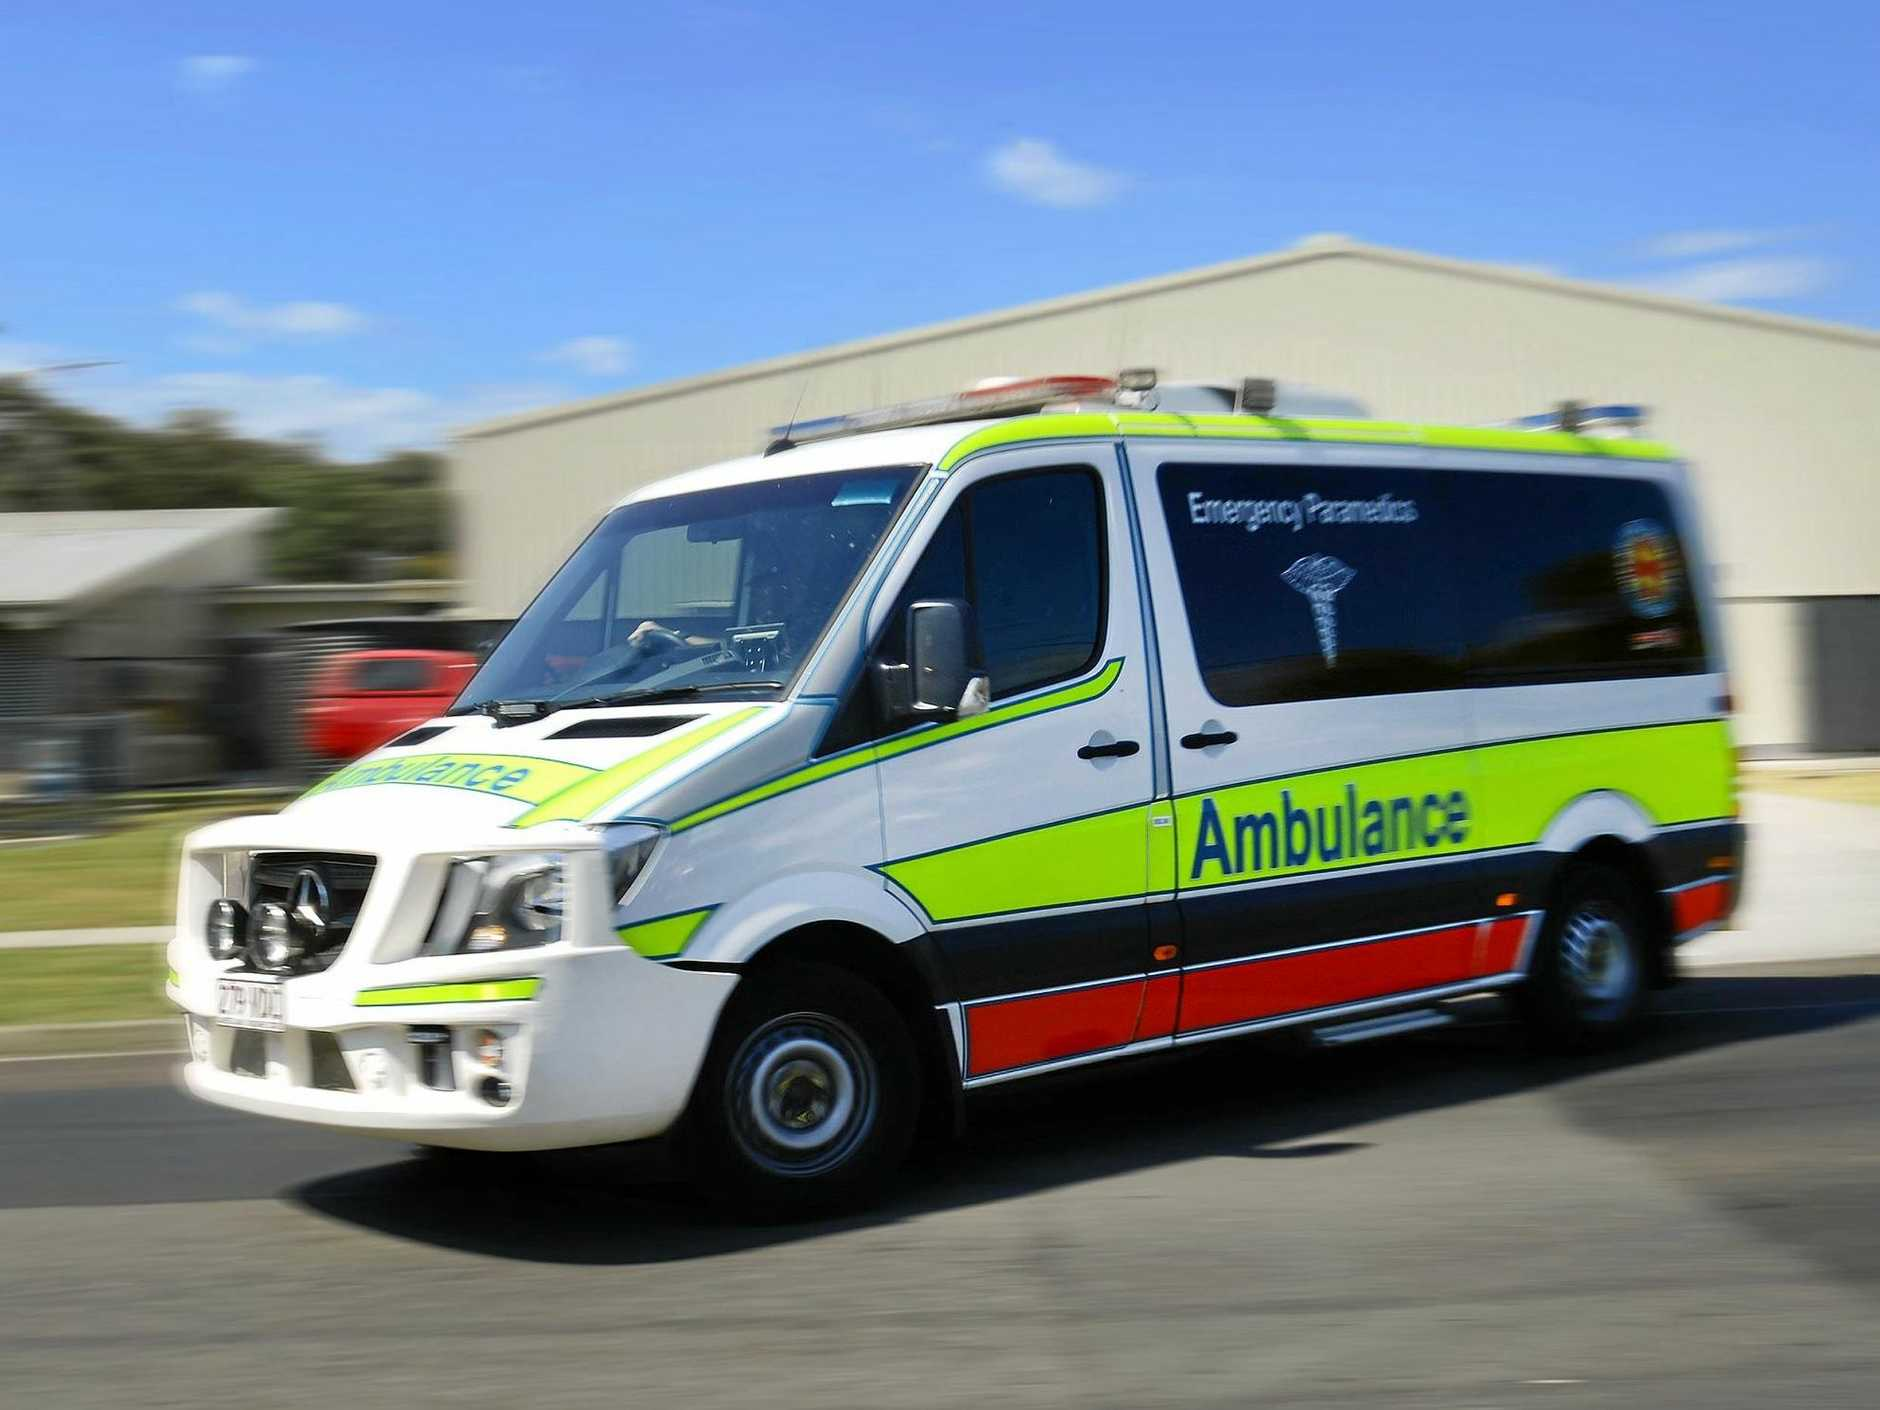 SOMERSET: Queensland Ambulance Service Paramedics transport three patients to hospital.